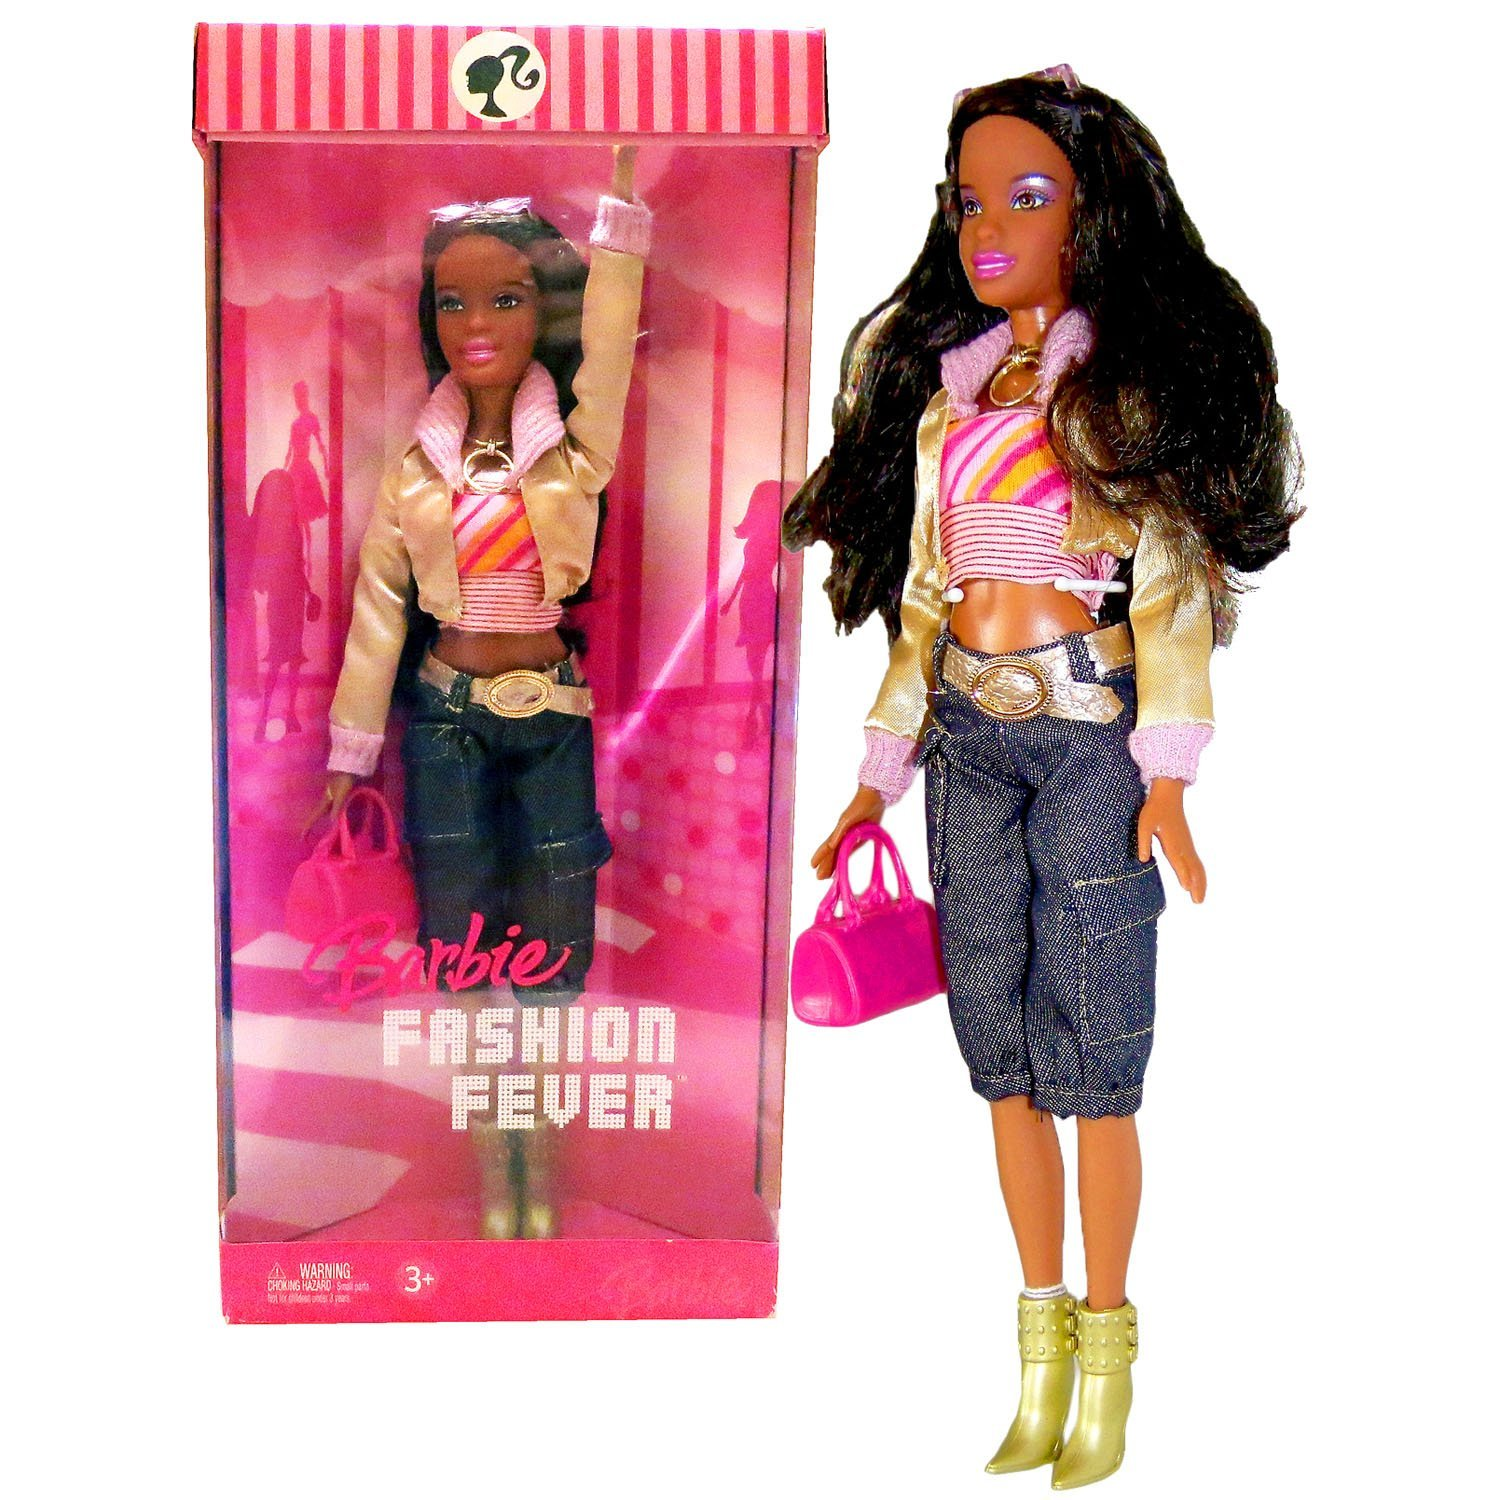 Mattel Year 2006 Barbie Fashion Fever Series 12 Inch Tall Doll Set - Sassy, Smart and Cool NIKKI (K8415) with Pink Tube Tops, Gold Jacket, Denim Pants, Sunglasses, Necklace, Purse and High Heel Boots